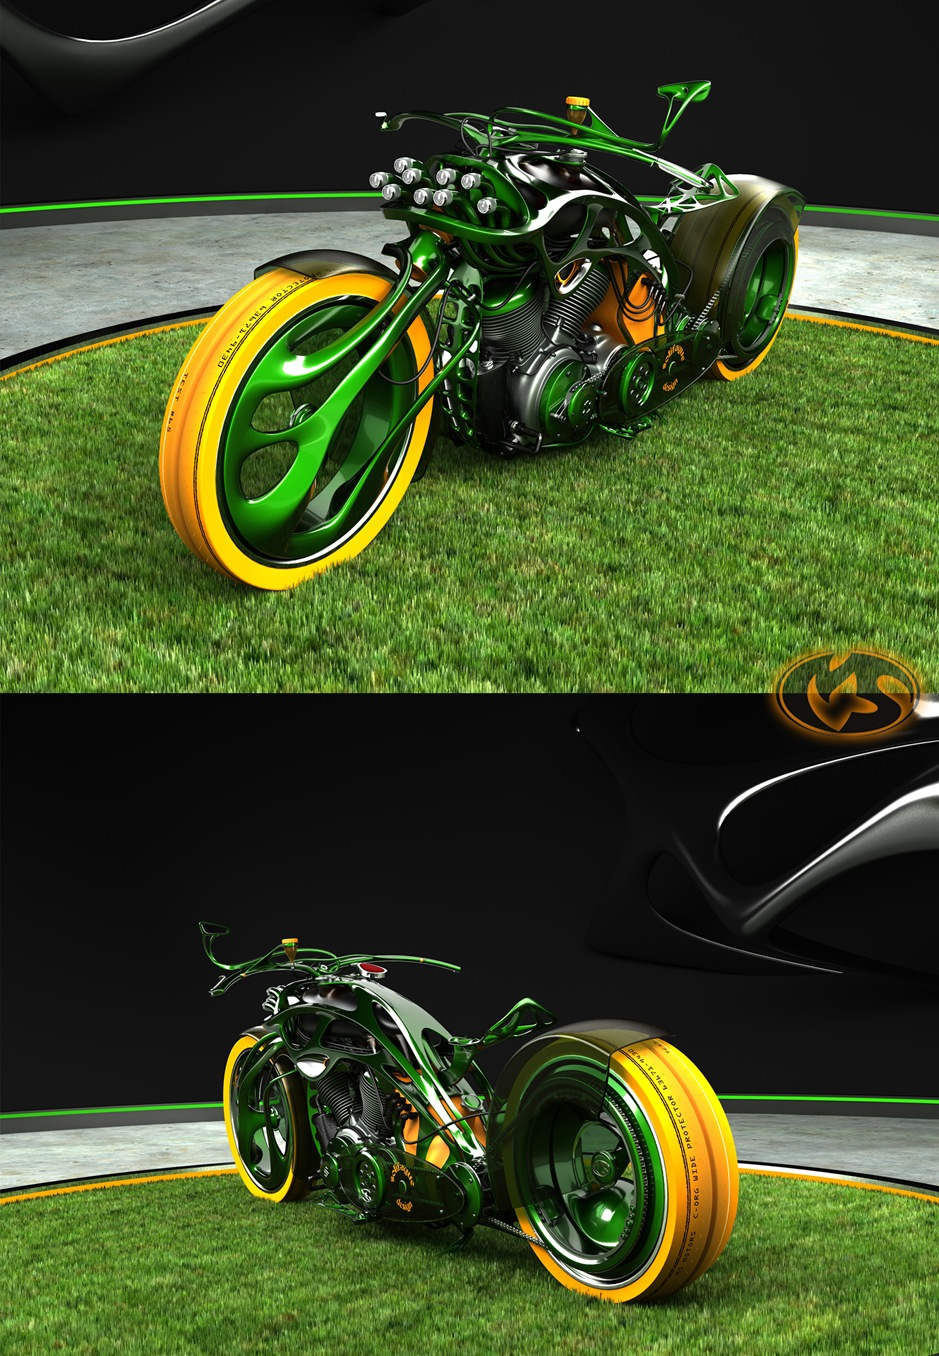 2 15787 thumb 9 Seriously Sick Sleds by Solif: Creative Custom Choppers